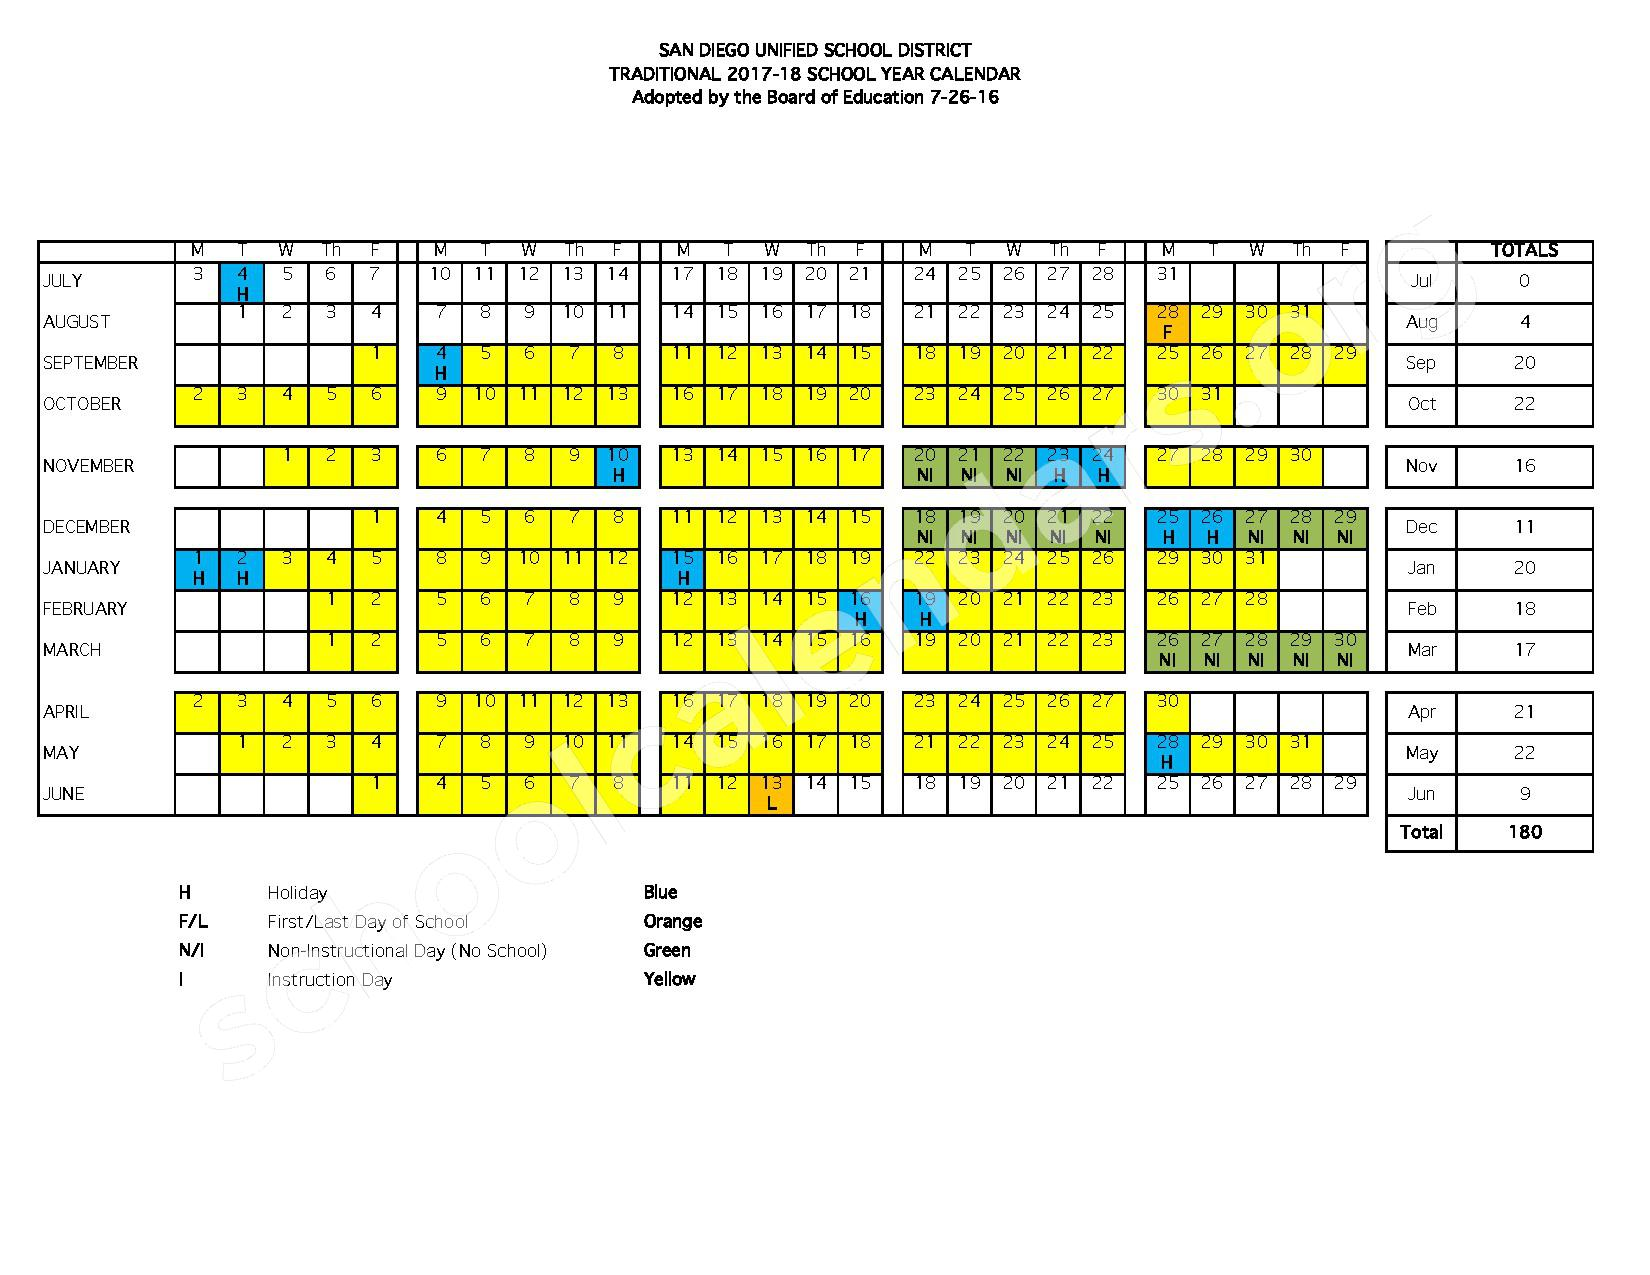 San Diego Unified School District Calendars San Diego Ca